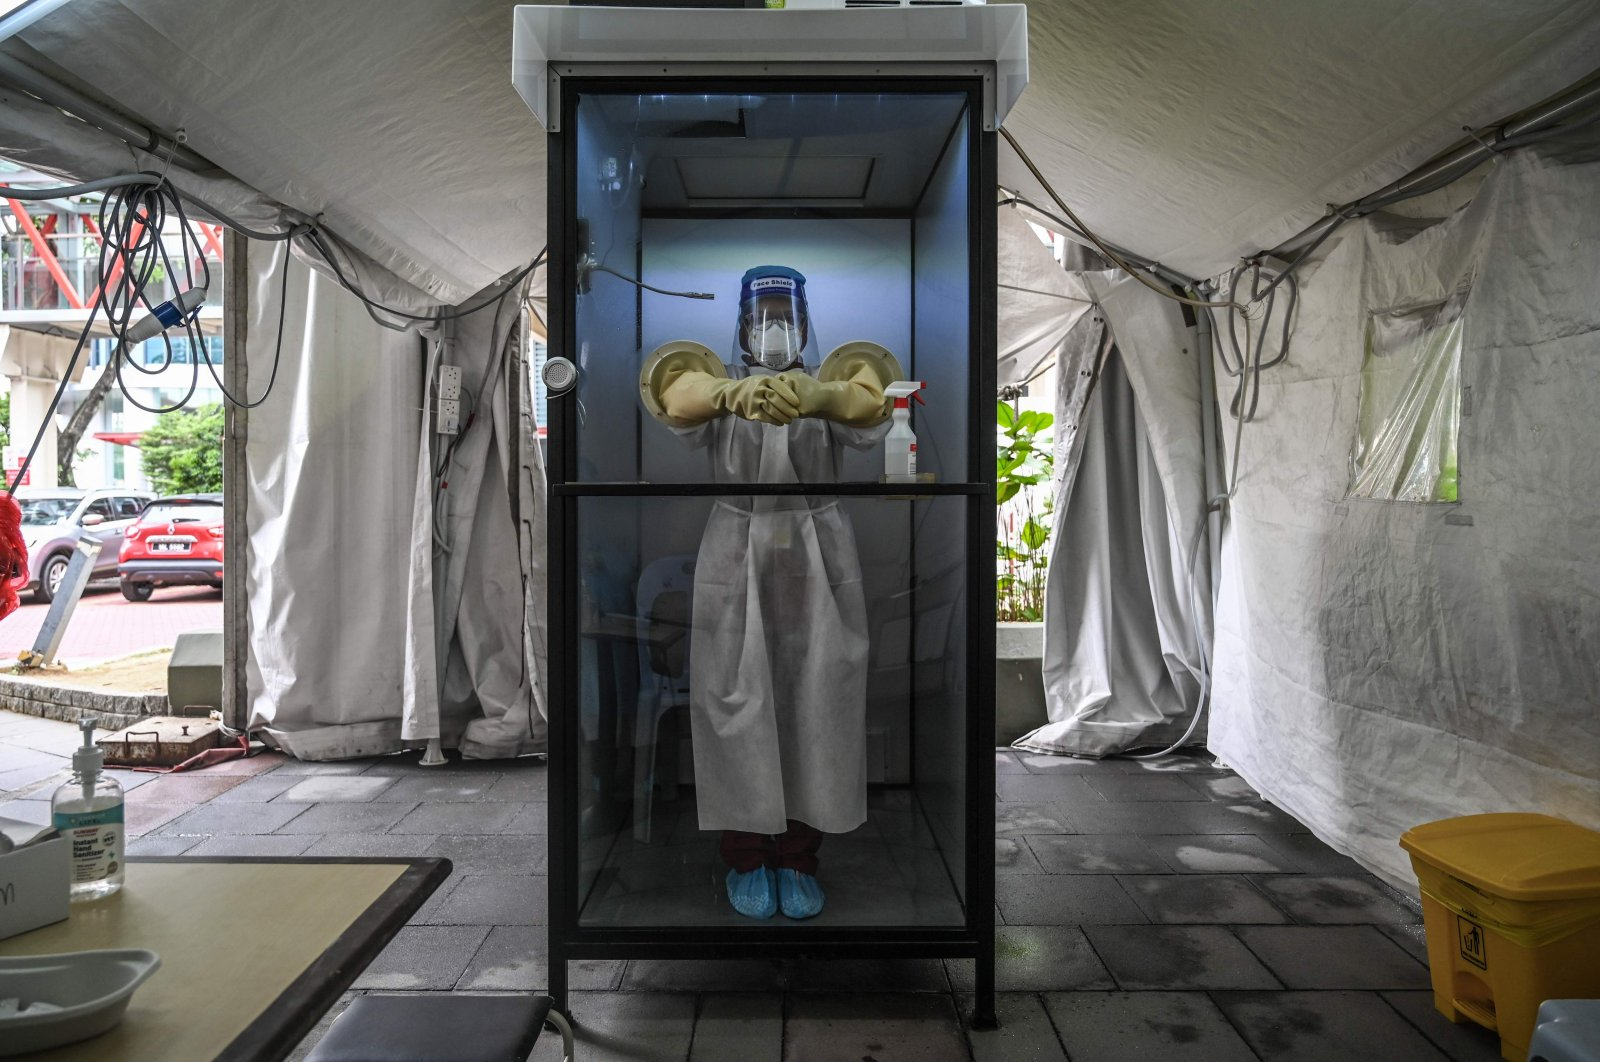 """A health worker stands inside a noncontact chamber called the """"CoV SHIELD"""" before taking swab samples to test for the coronavirus at Sunway Medical Center in Subang Jaya, on the outskirts of Kuala Lumpur, Oct. 22, 2020. (AFP Photo)"""